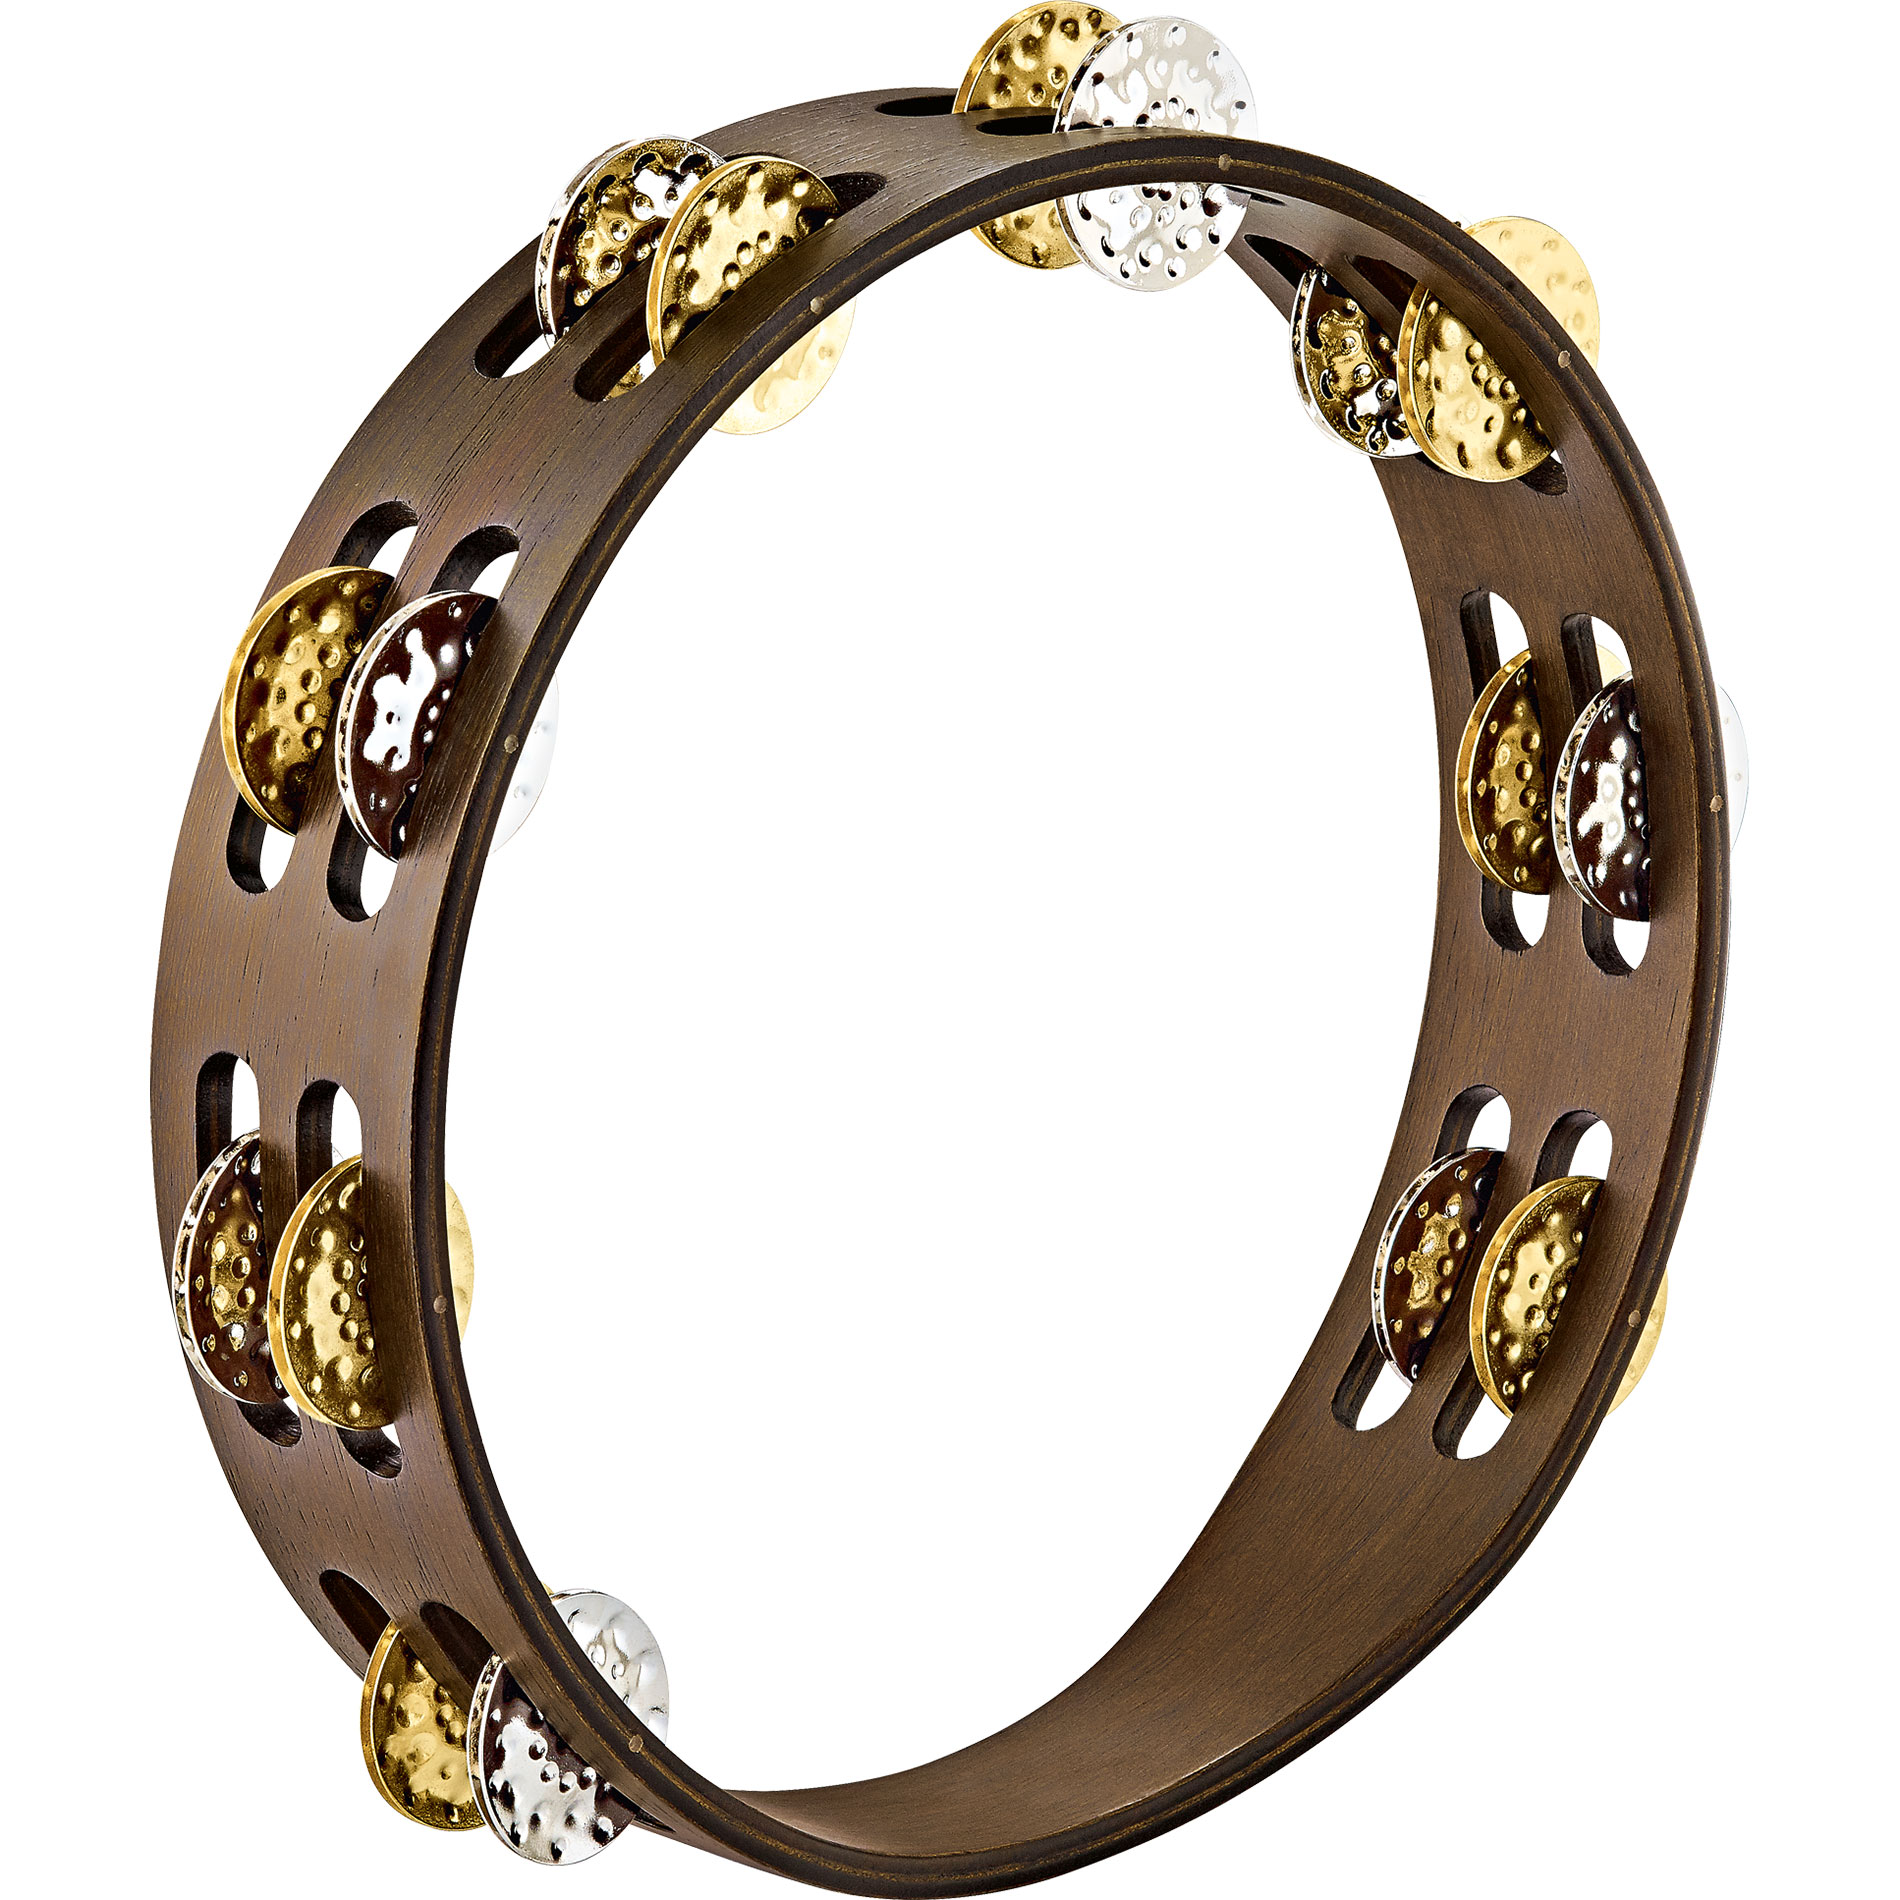 Meinl Double Row Wood Tambourine with Hammered Brass/Steel Jingles in Walnut Brown